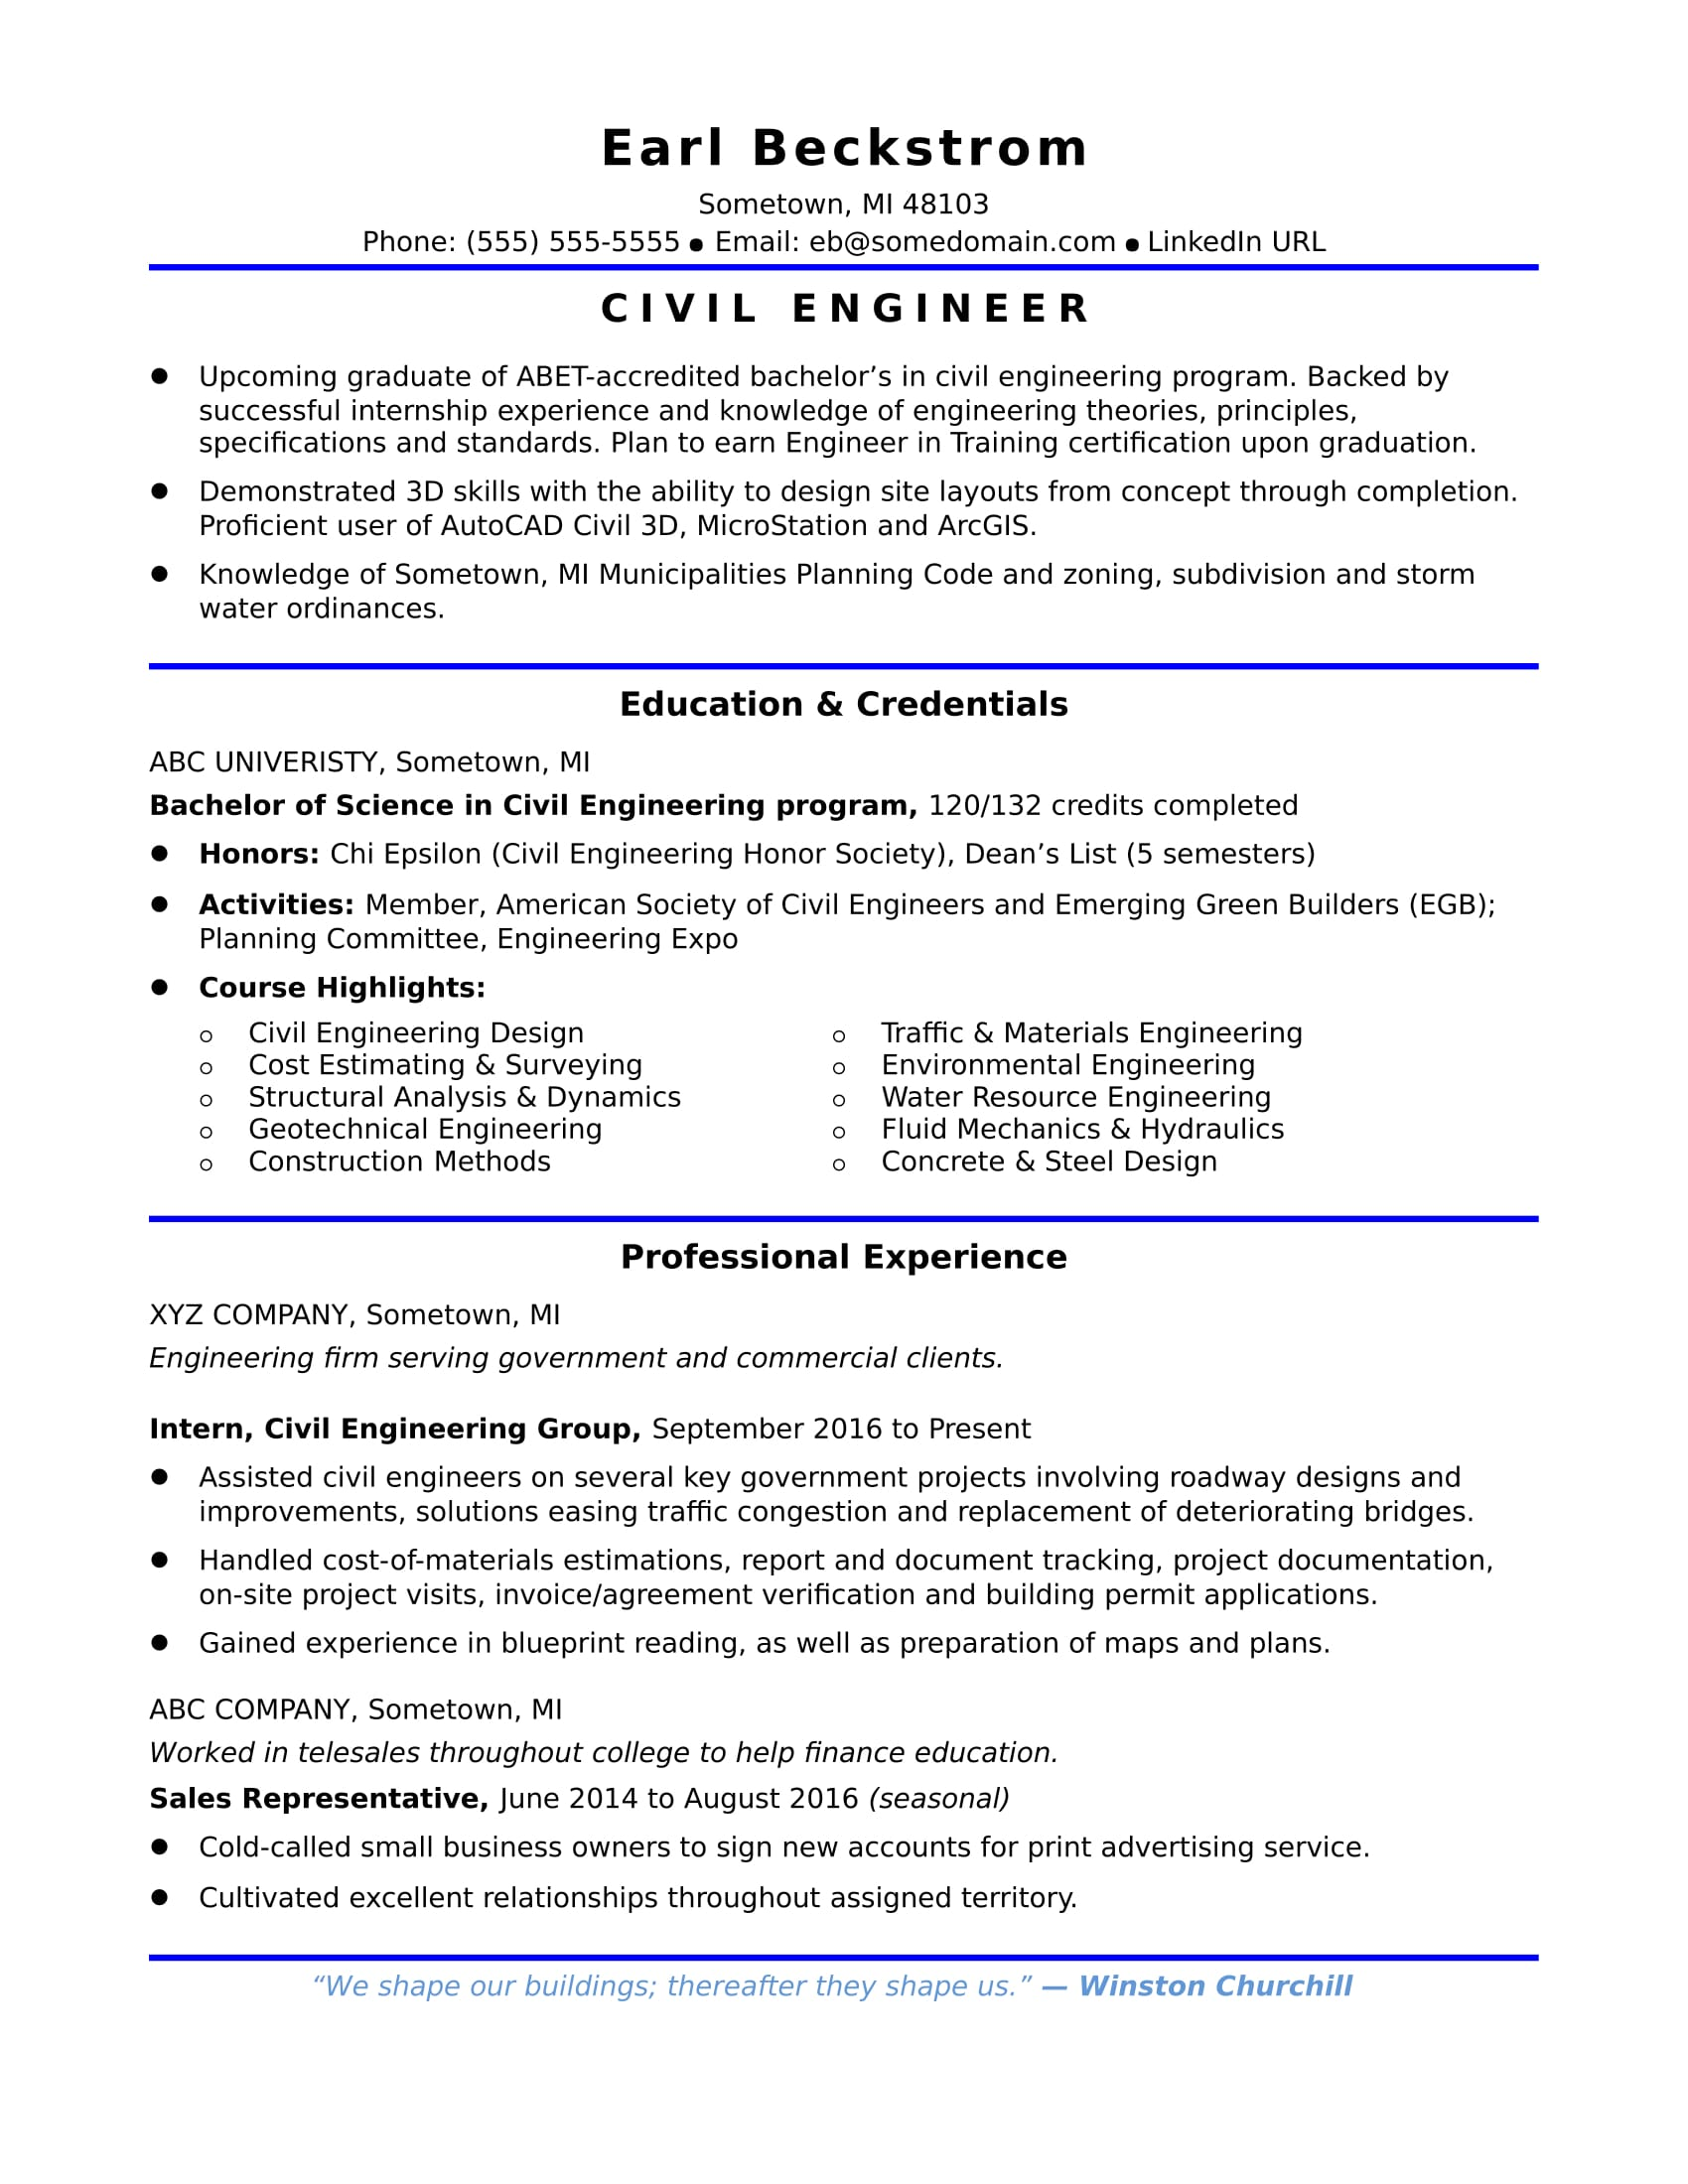 sample resume for an entry level civil engineer monster objective engineering student Resume Objective For Civil Engineering Student Resume